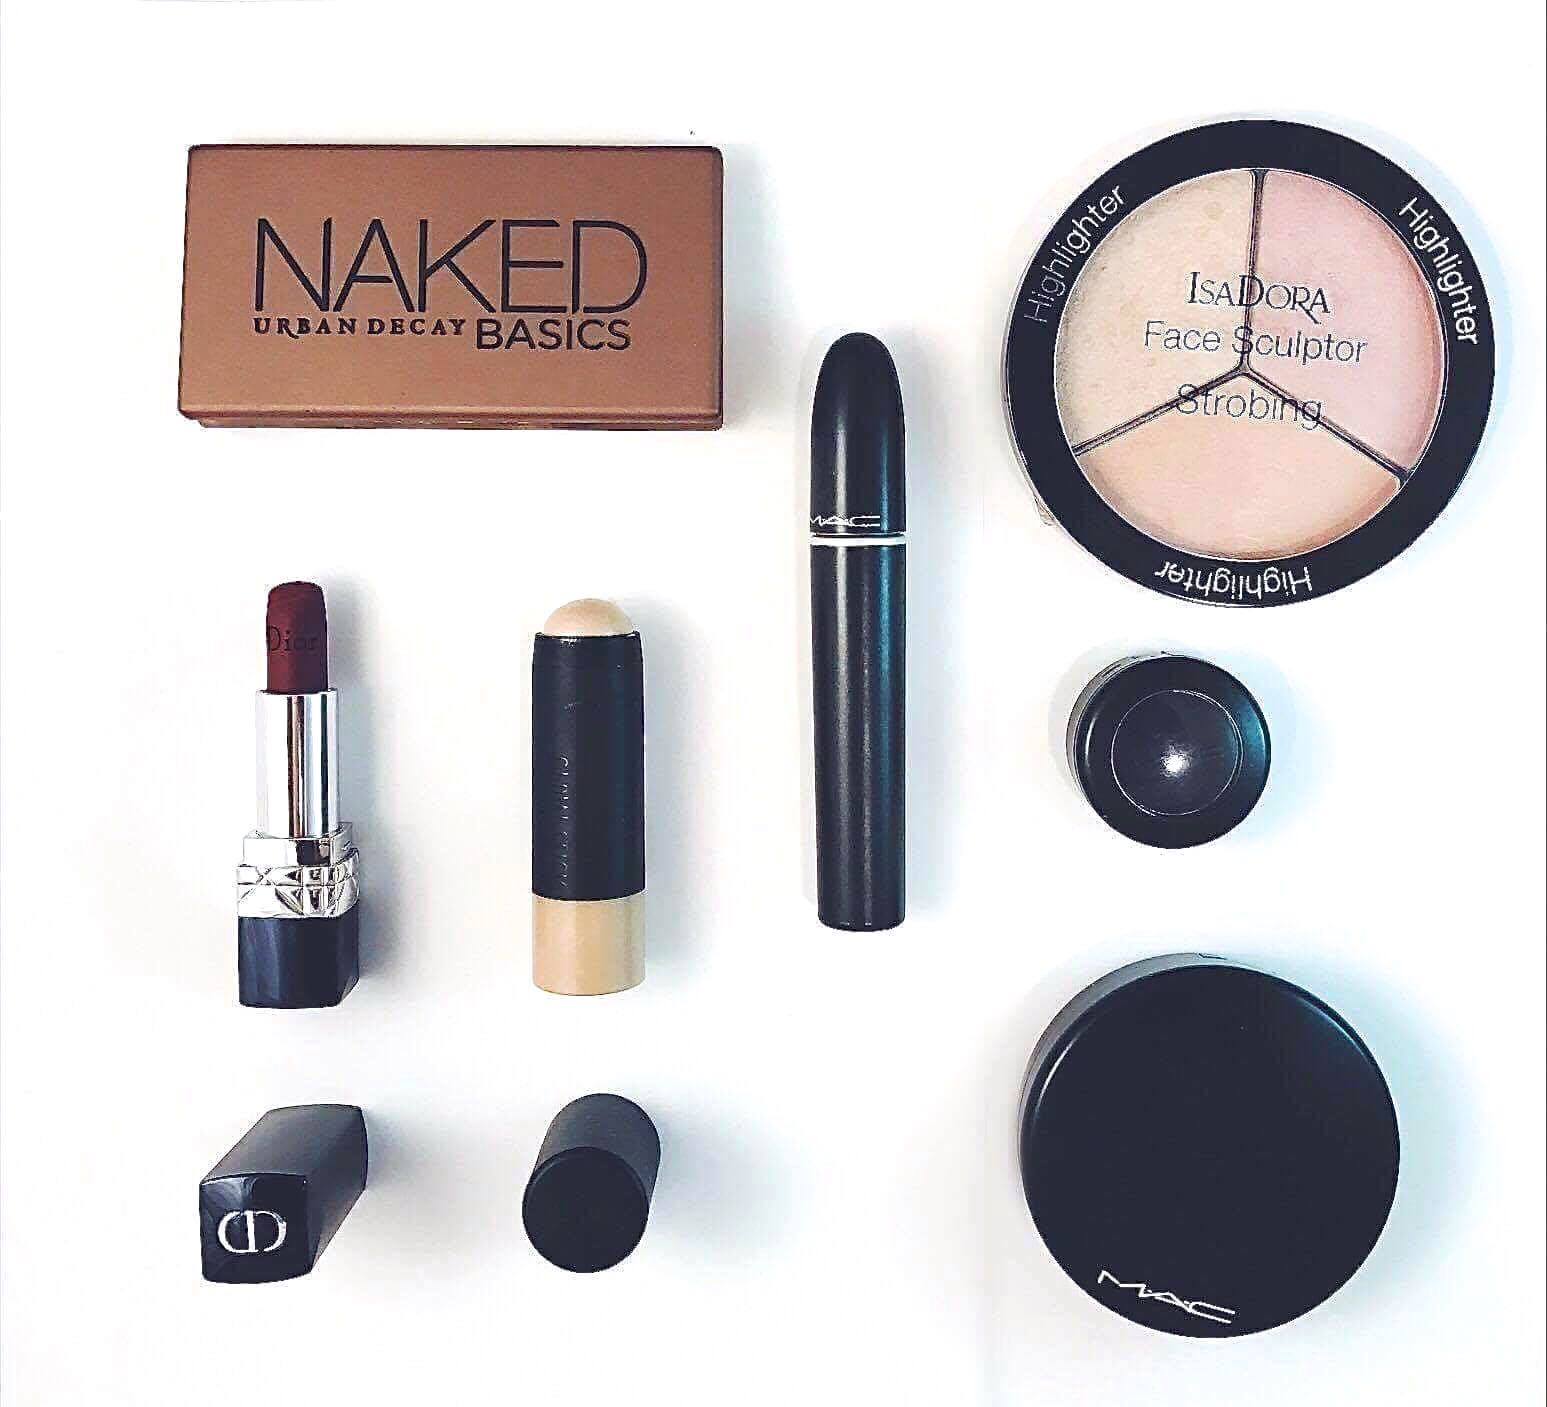 What makeup products can you use to look #likeapro?